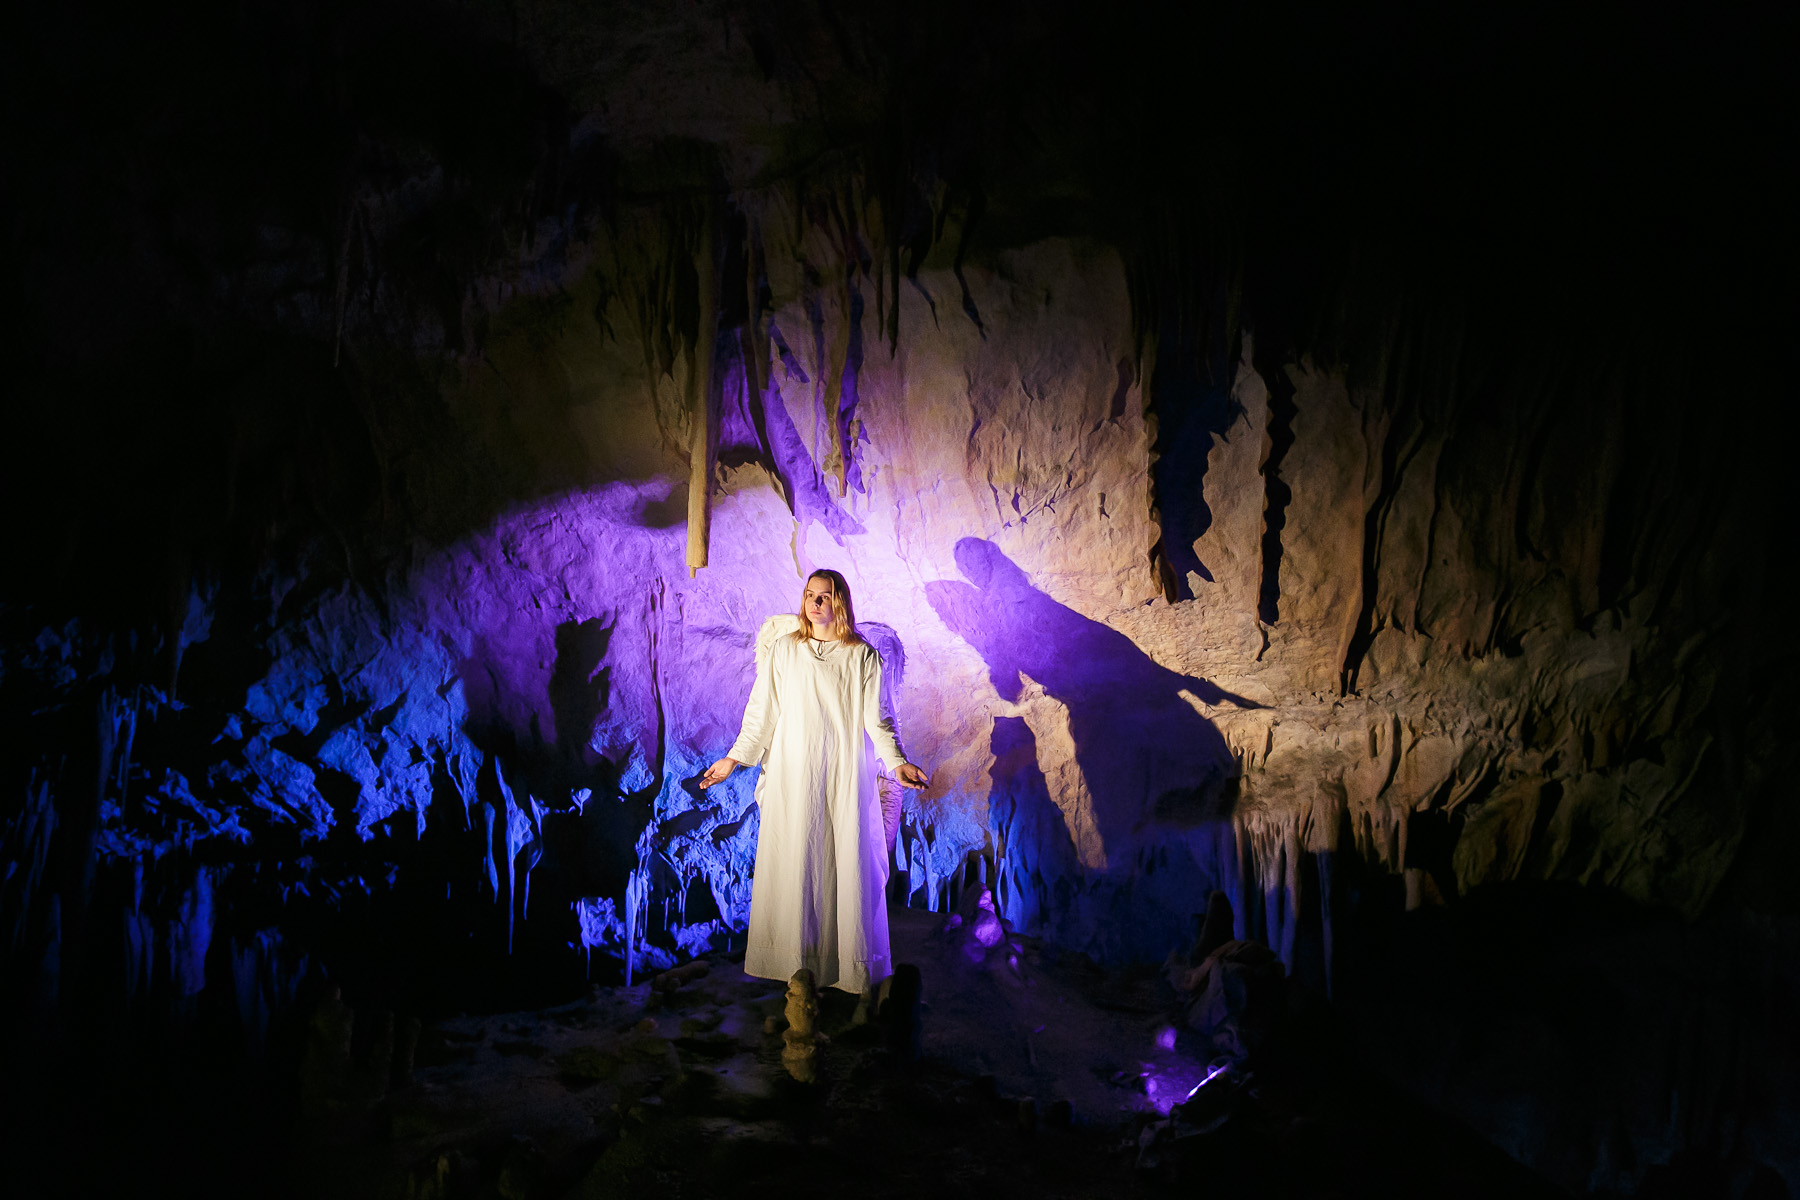 A performer represents an angel during the world's largest live Nativity scene in a cave, staged in the world-famous Postojna Cave in Slovenia, Dec. 25, 2015.